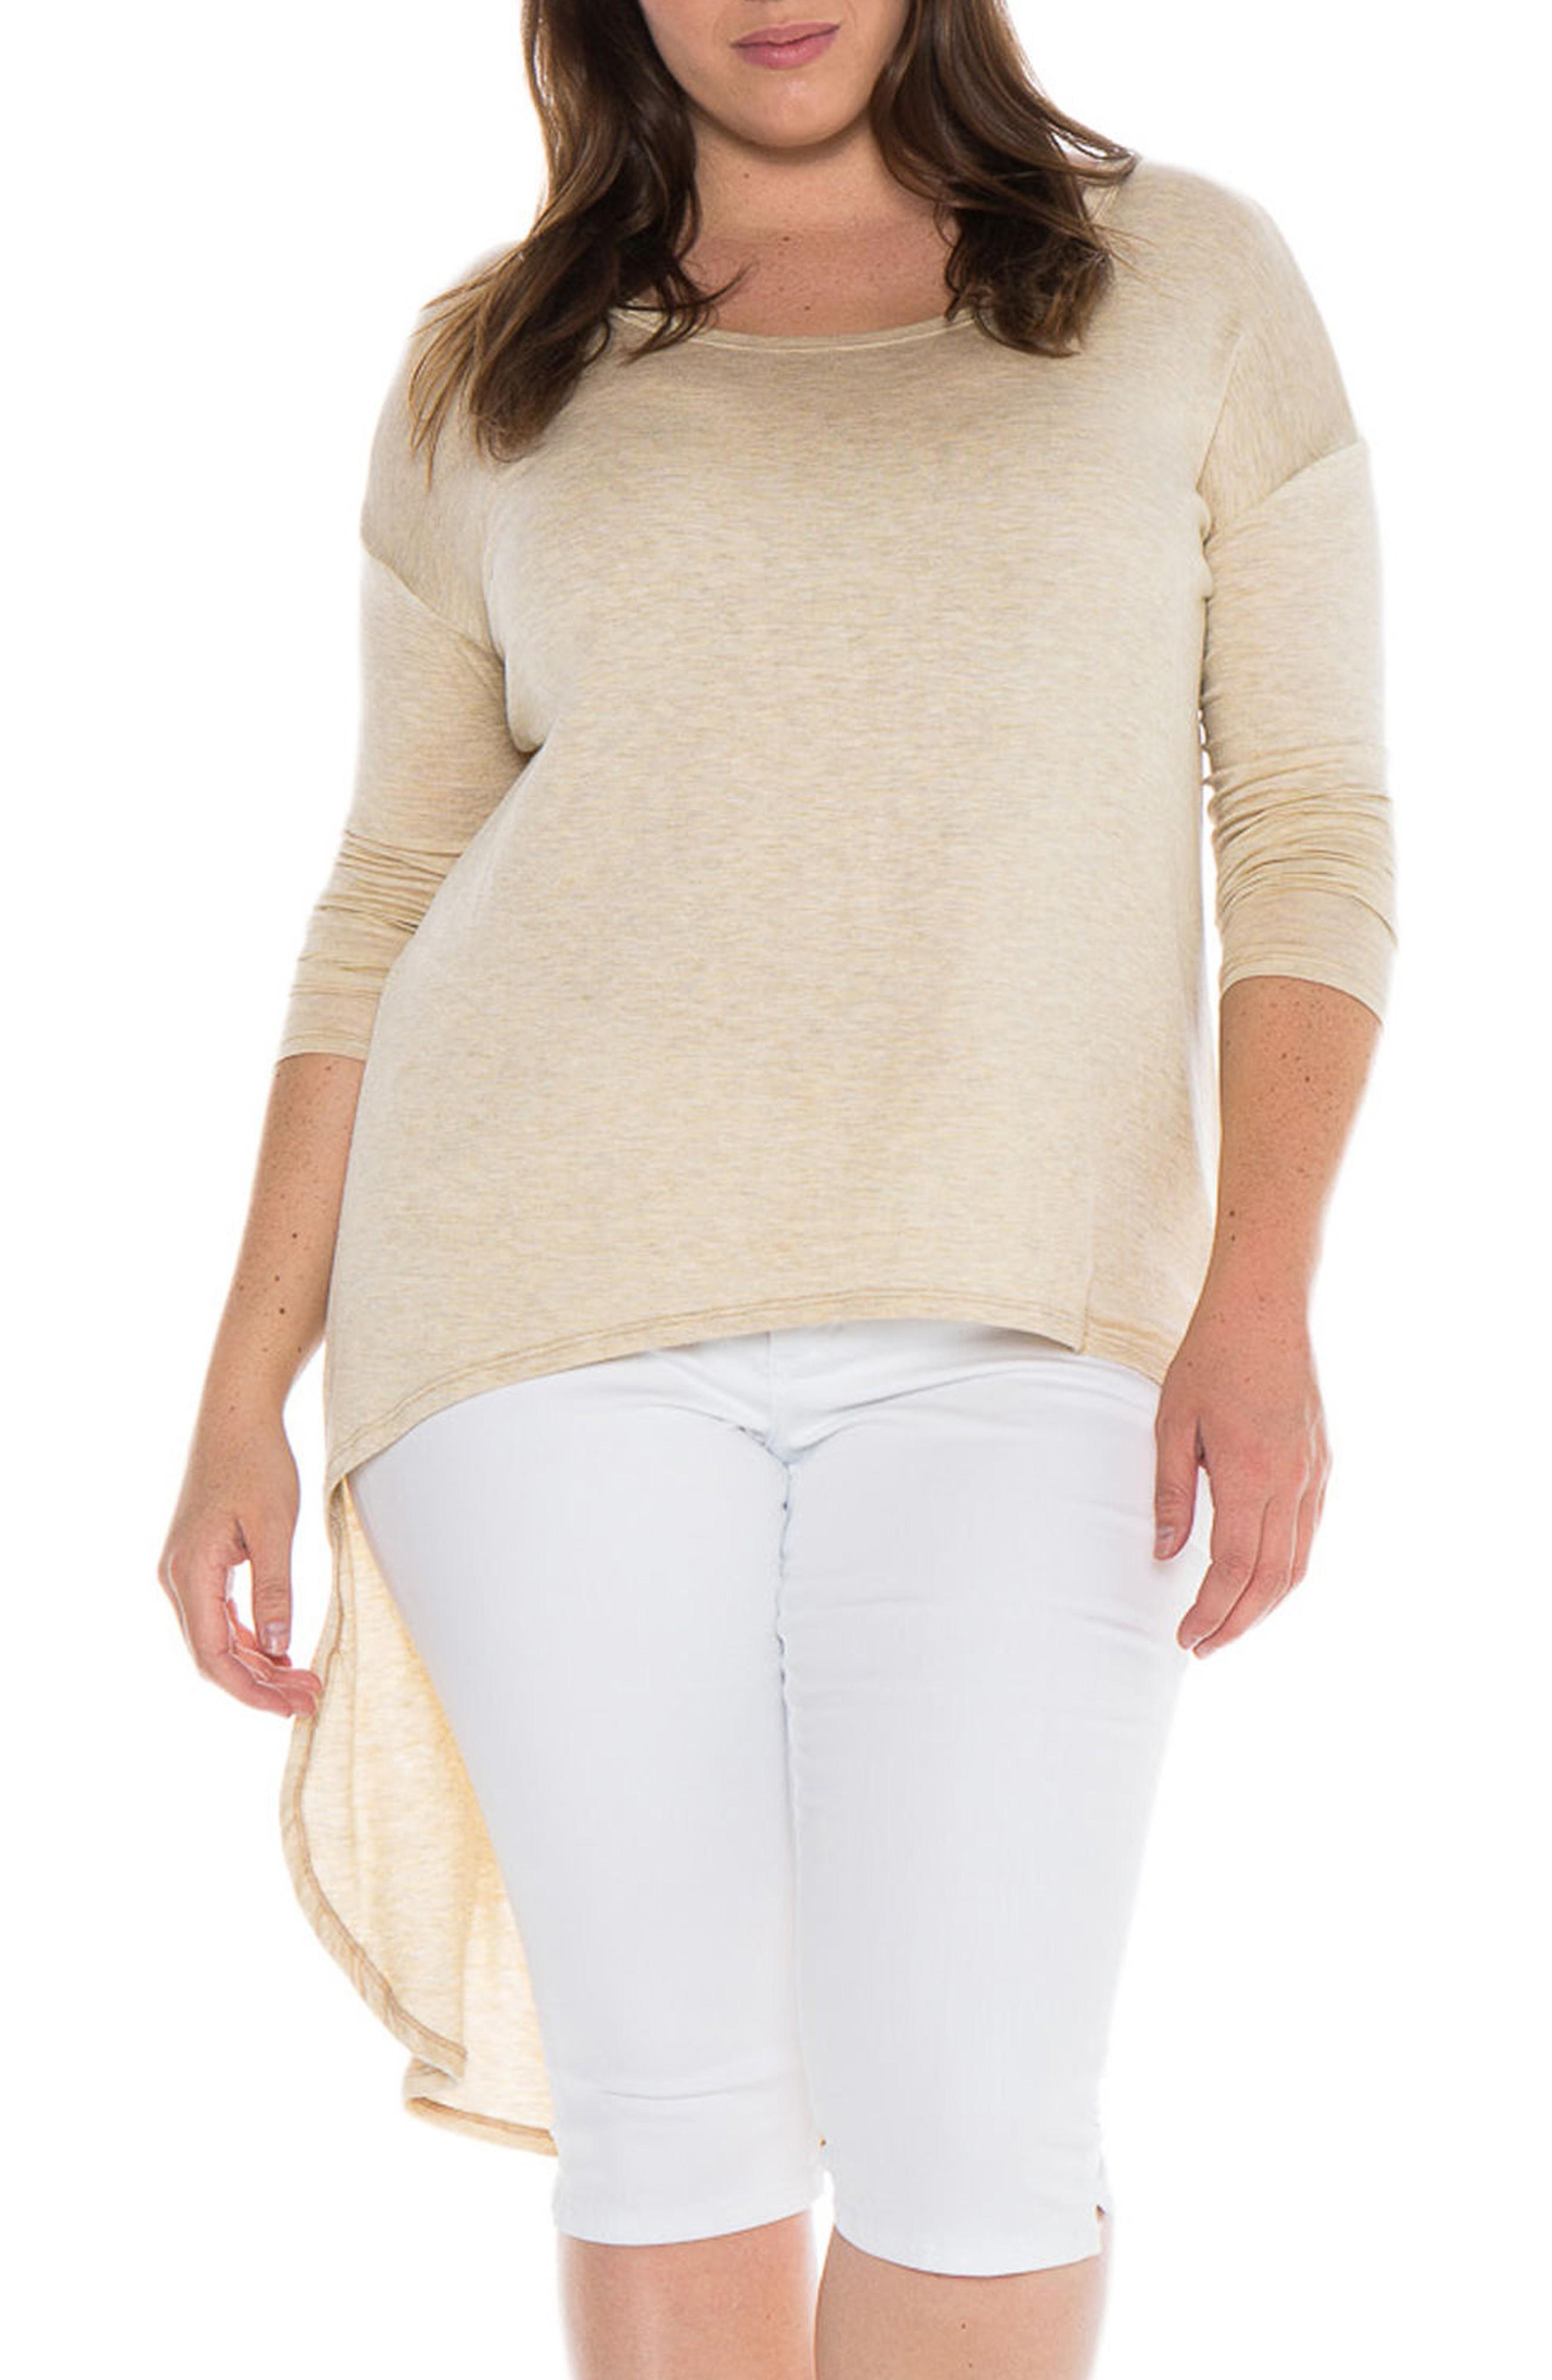 Slink Jeans High/low Top In Oatmeal